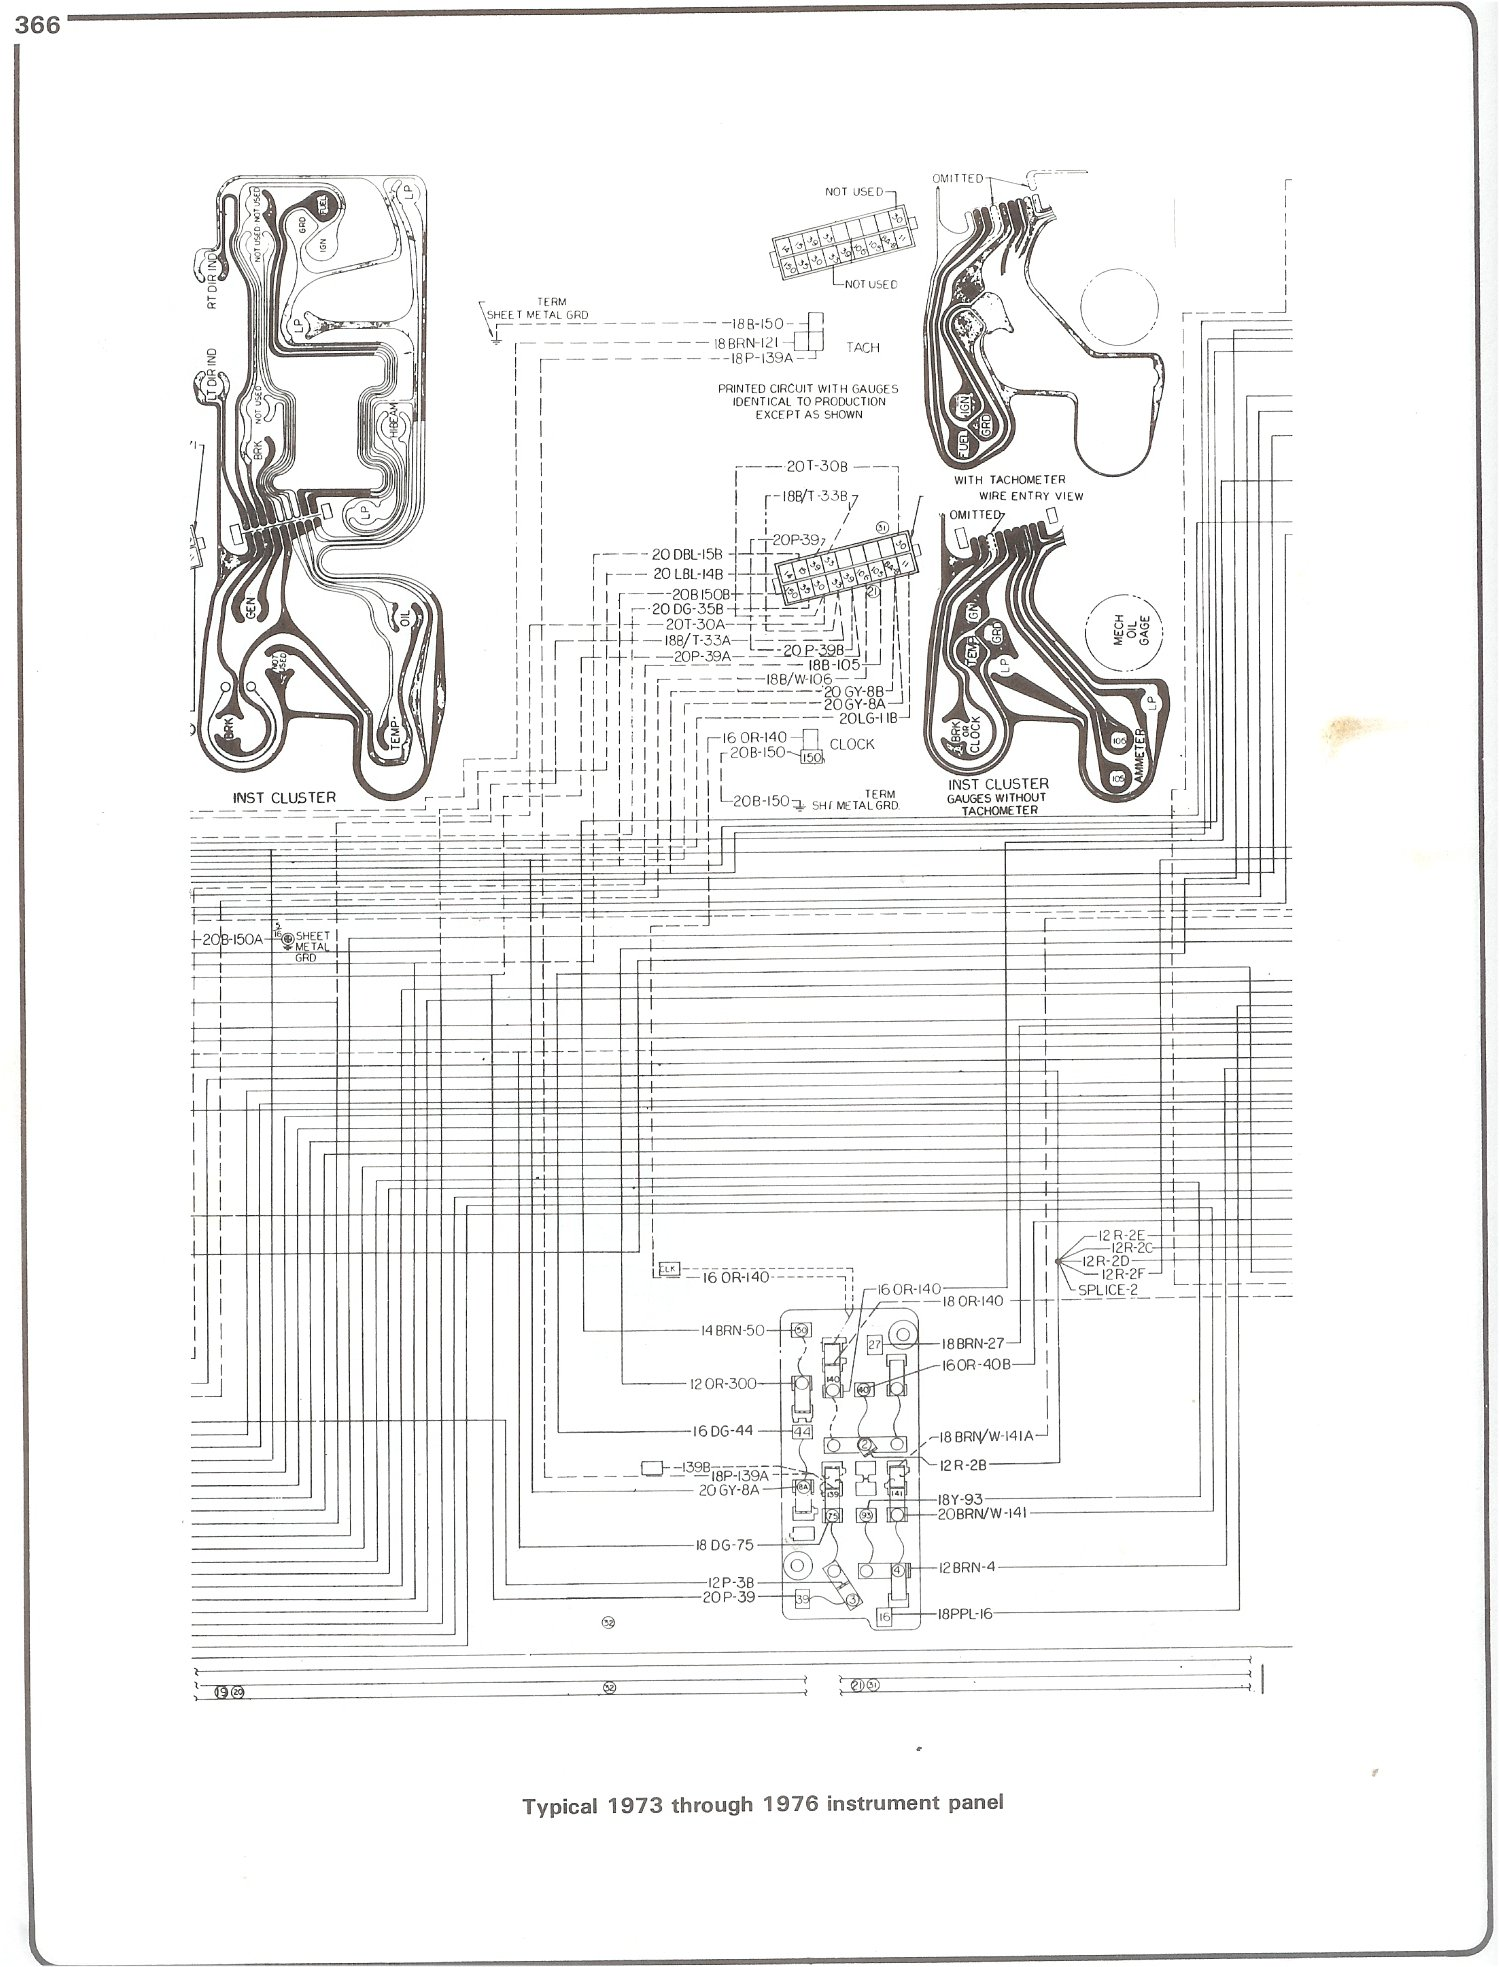 73 76_instrument complete 73 87 wiring diagrams 1985 chevy truck wiring diagram free at honlapkeszites.co